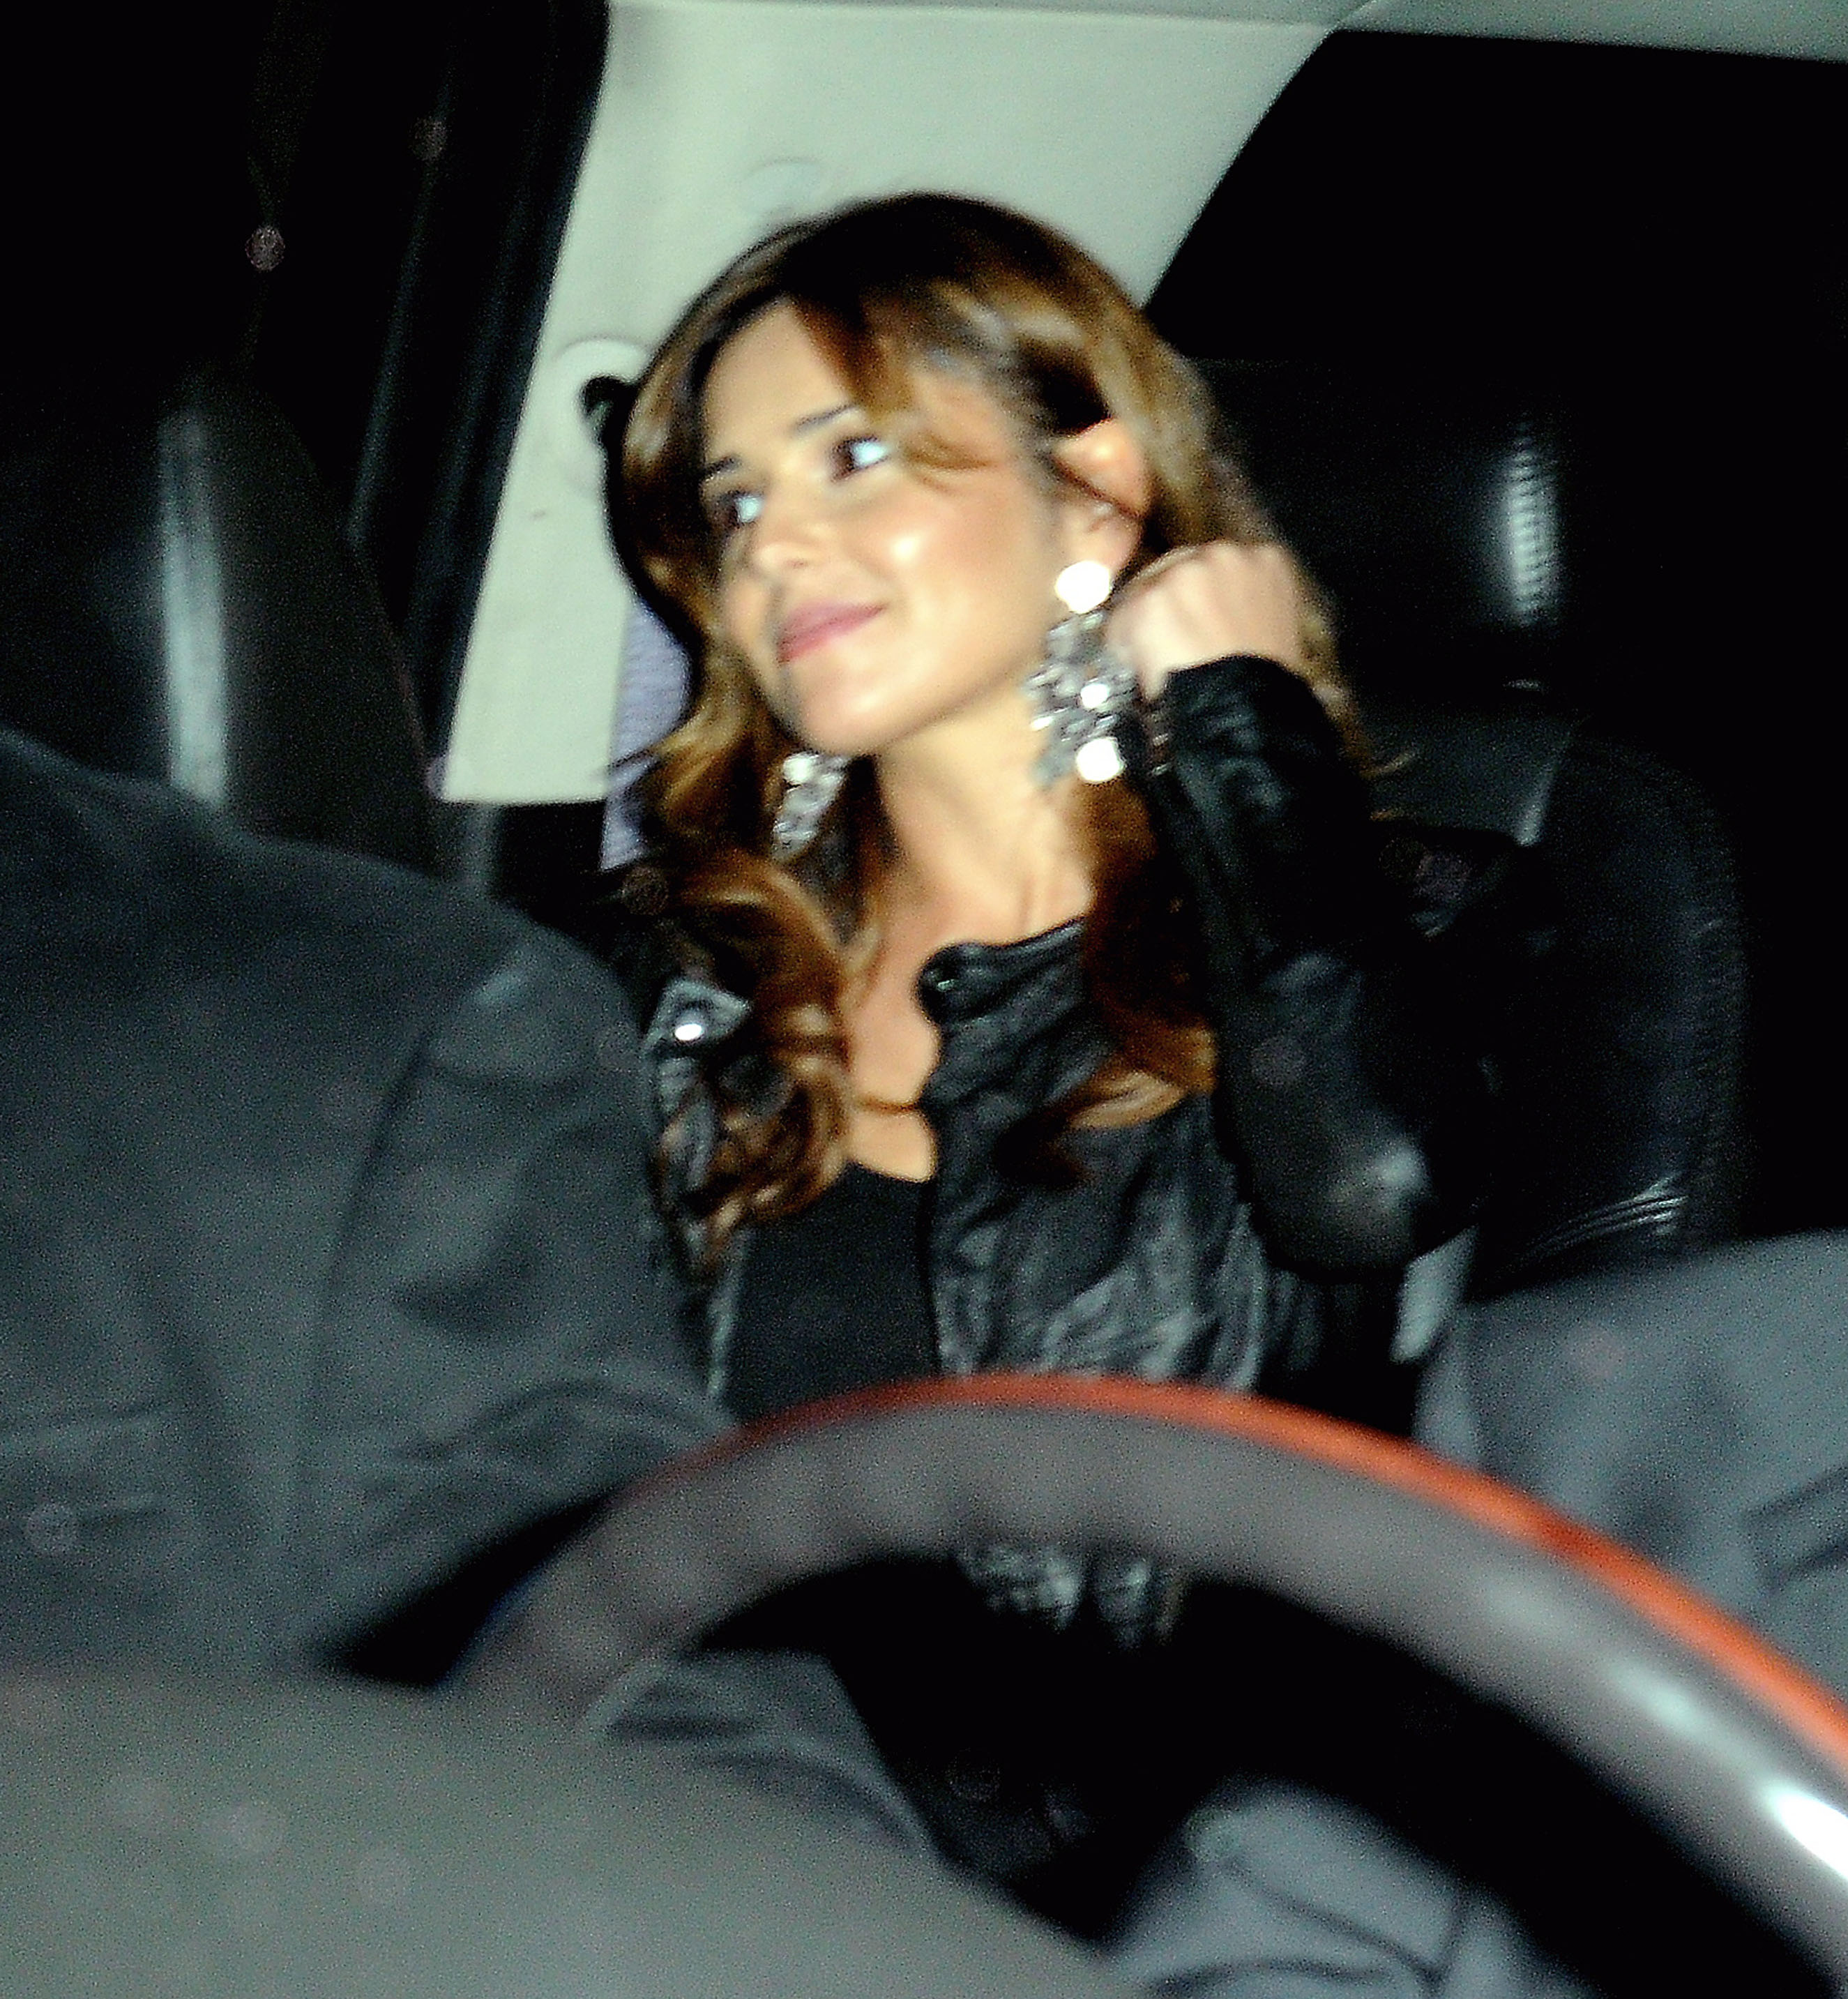 cheryl cole online dating Liam payne and cheryl cole seemed like the perfect celebrity couple but the romance has reportedly come to an end  secretly dating best friend laura demasie.